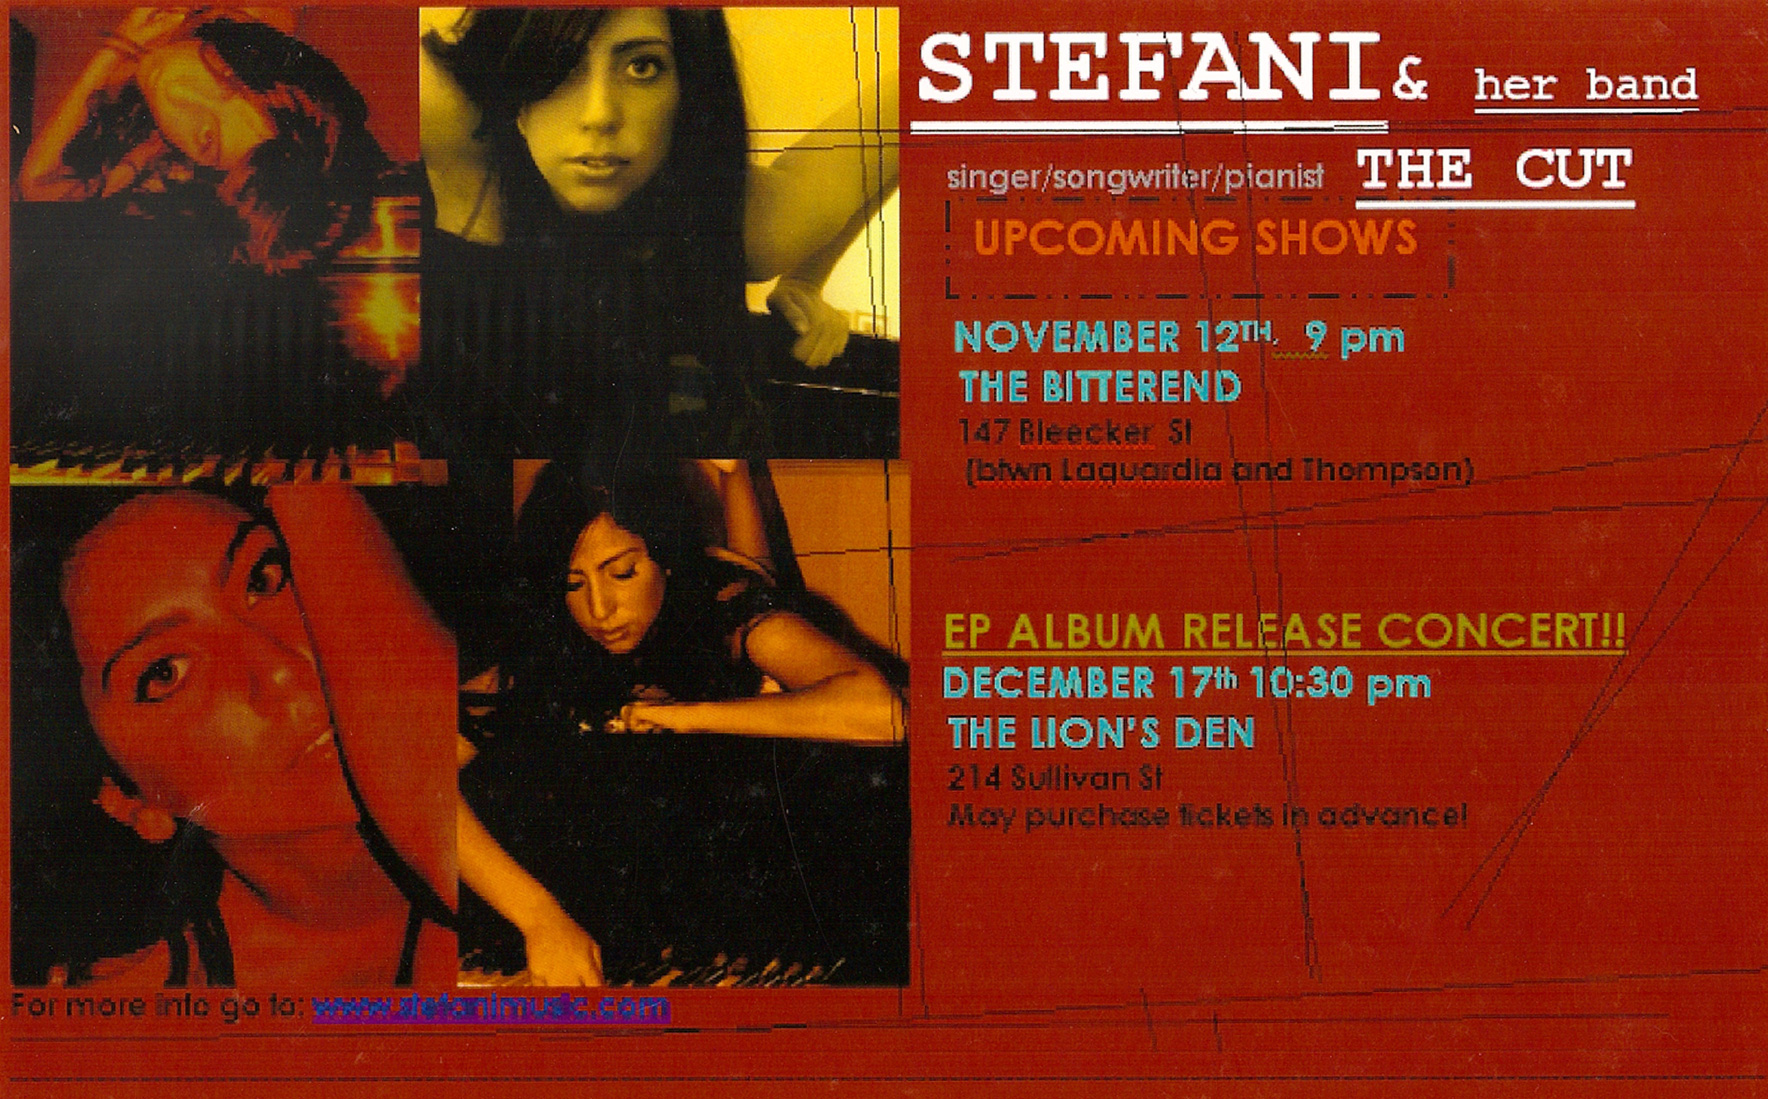 File:StefaniMusic 004.jpg